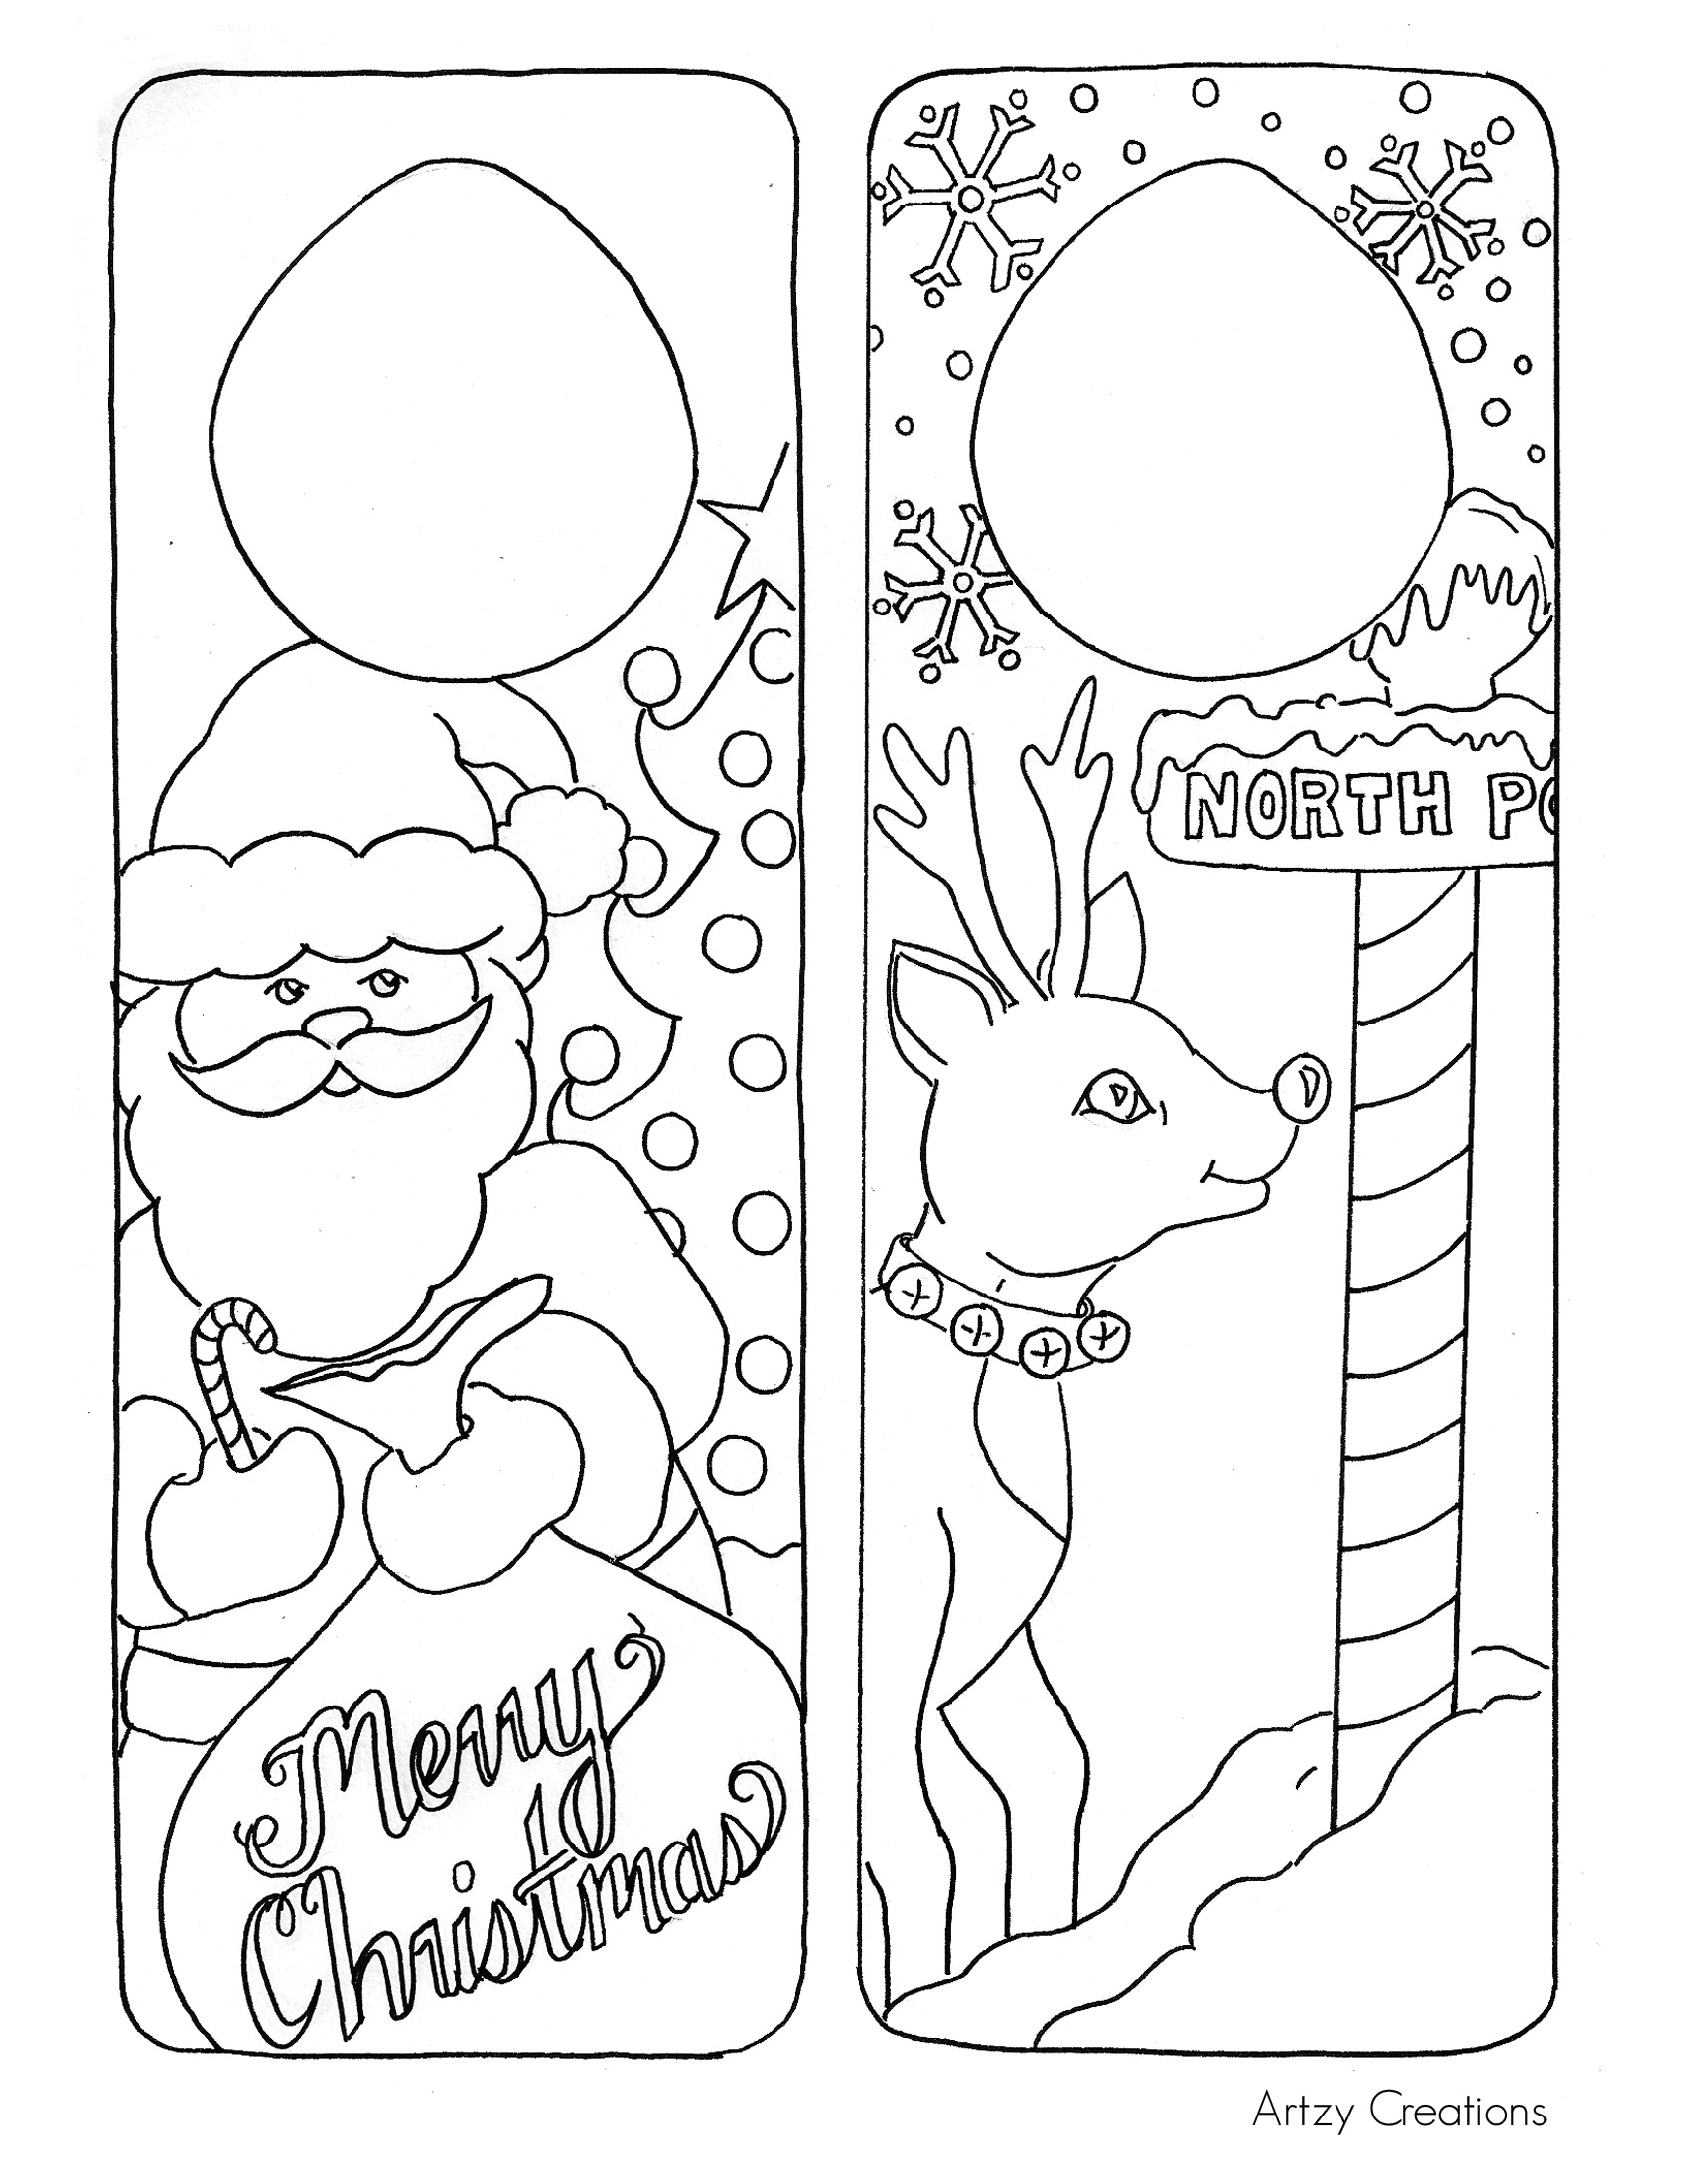 Christmas Colouring Pages That You Can Print With Coloring Page Door Hanger Printables The 36th AVENUE